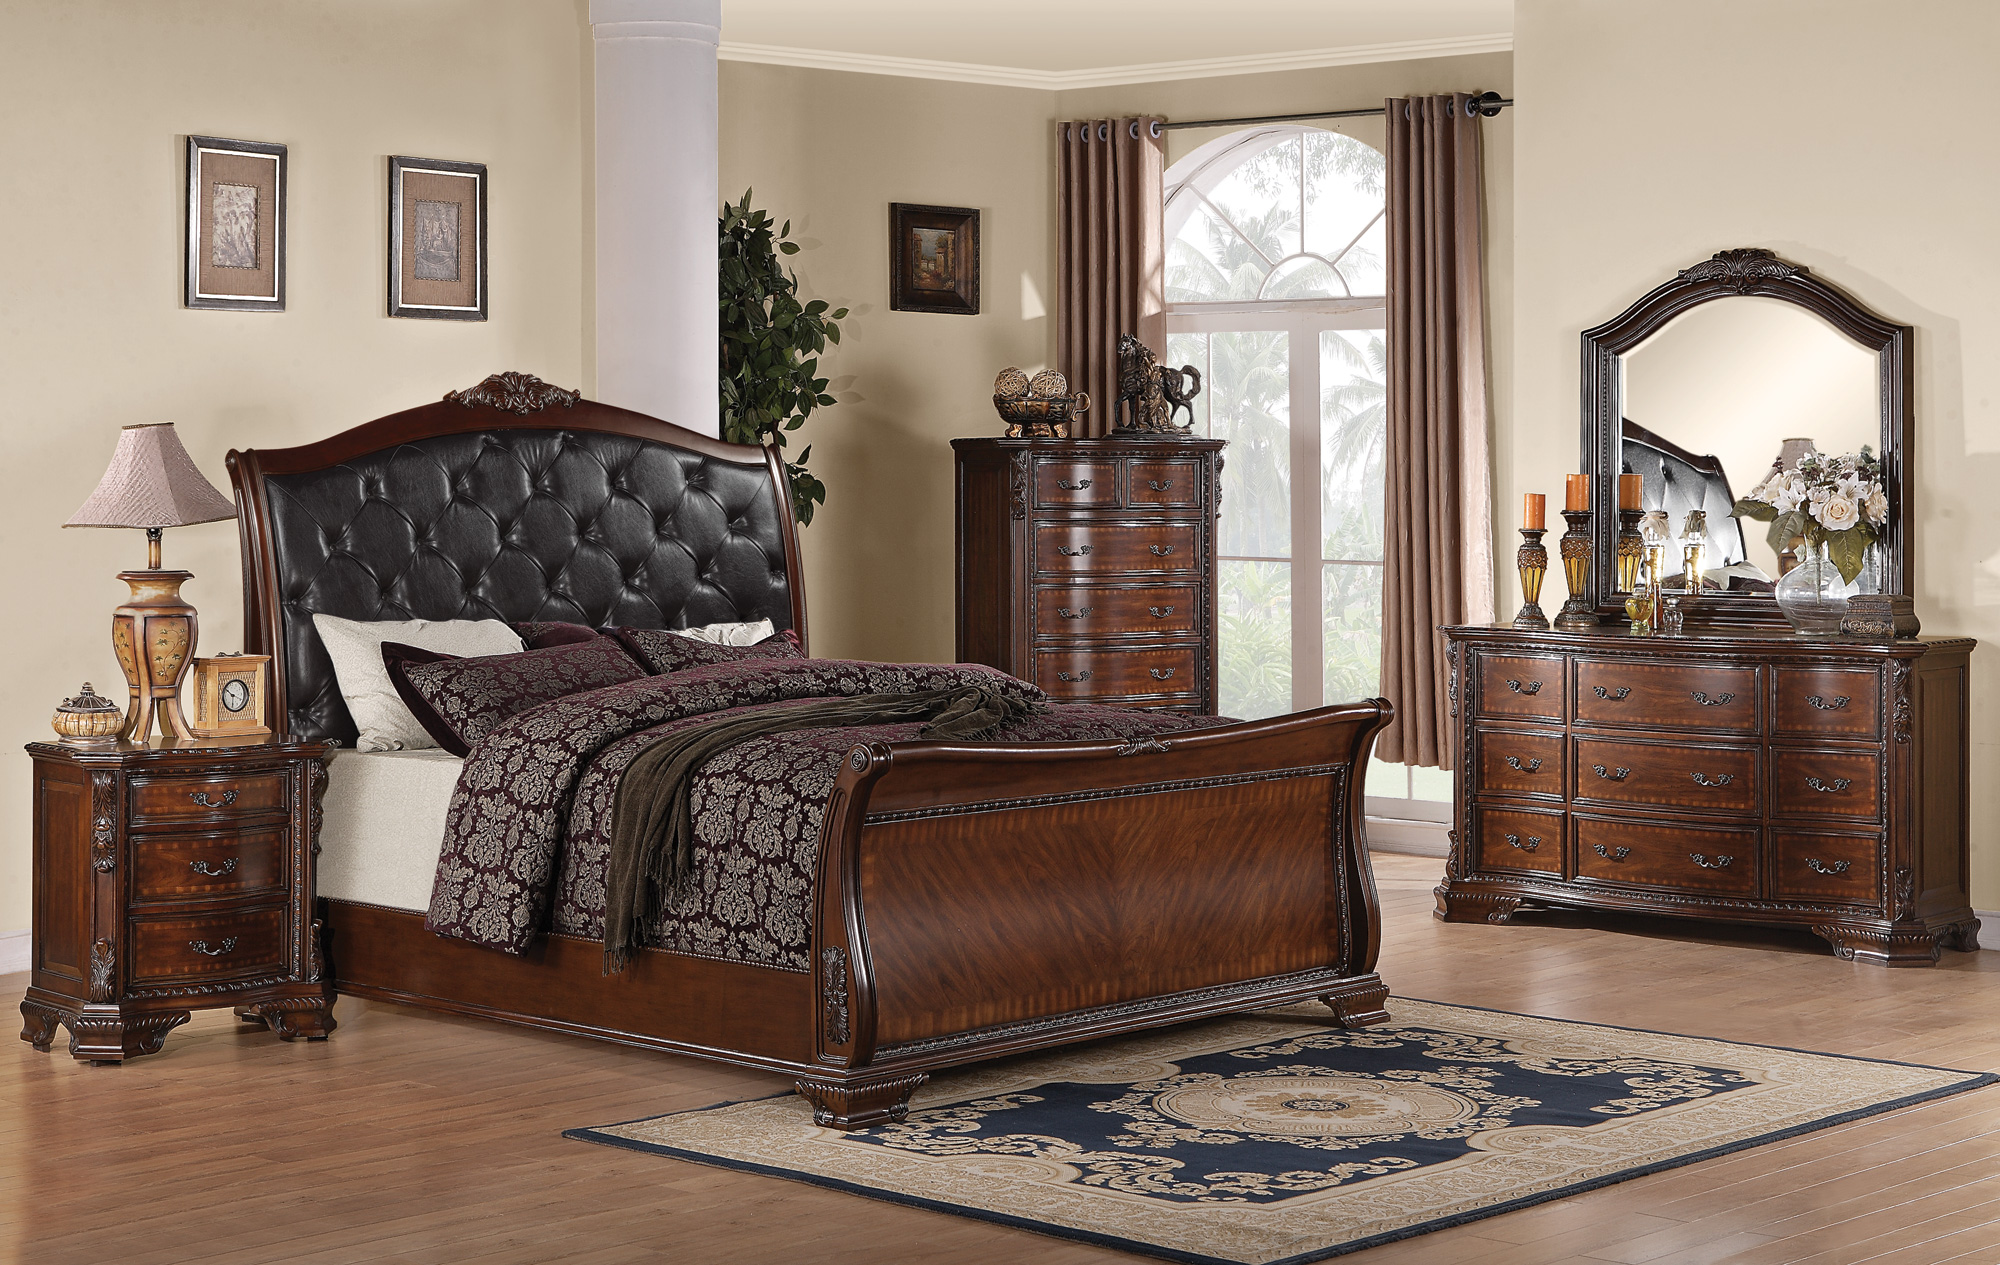 Collection 202261 Brown Cherry Bedroom Set